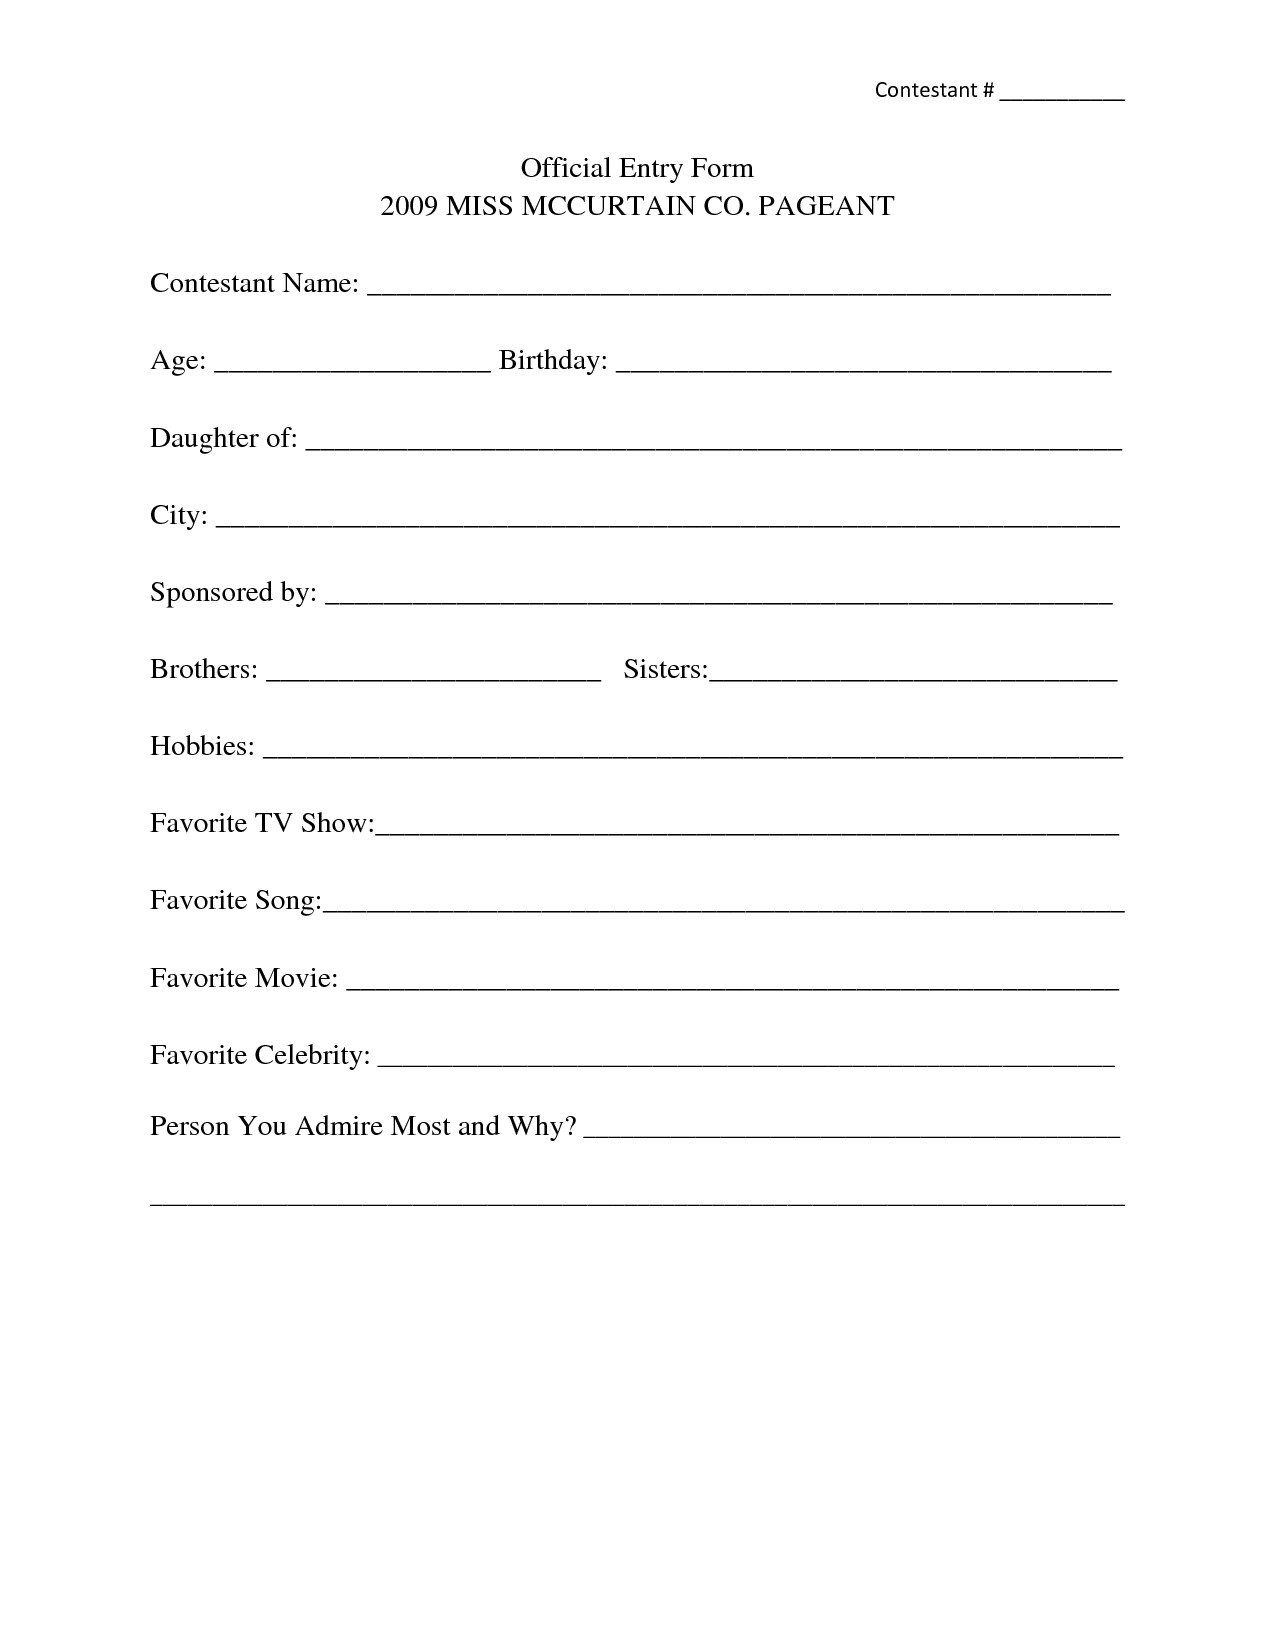 Pageant Entry form Template Application form Design Template